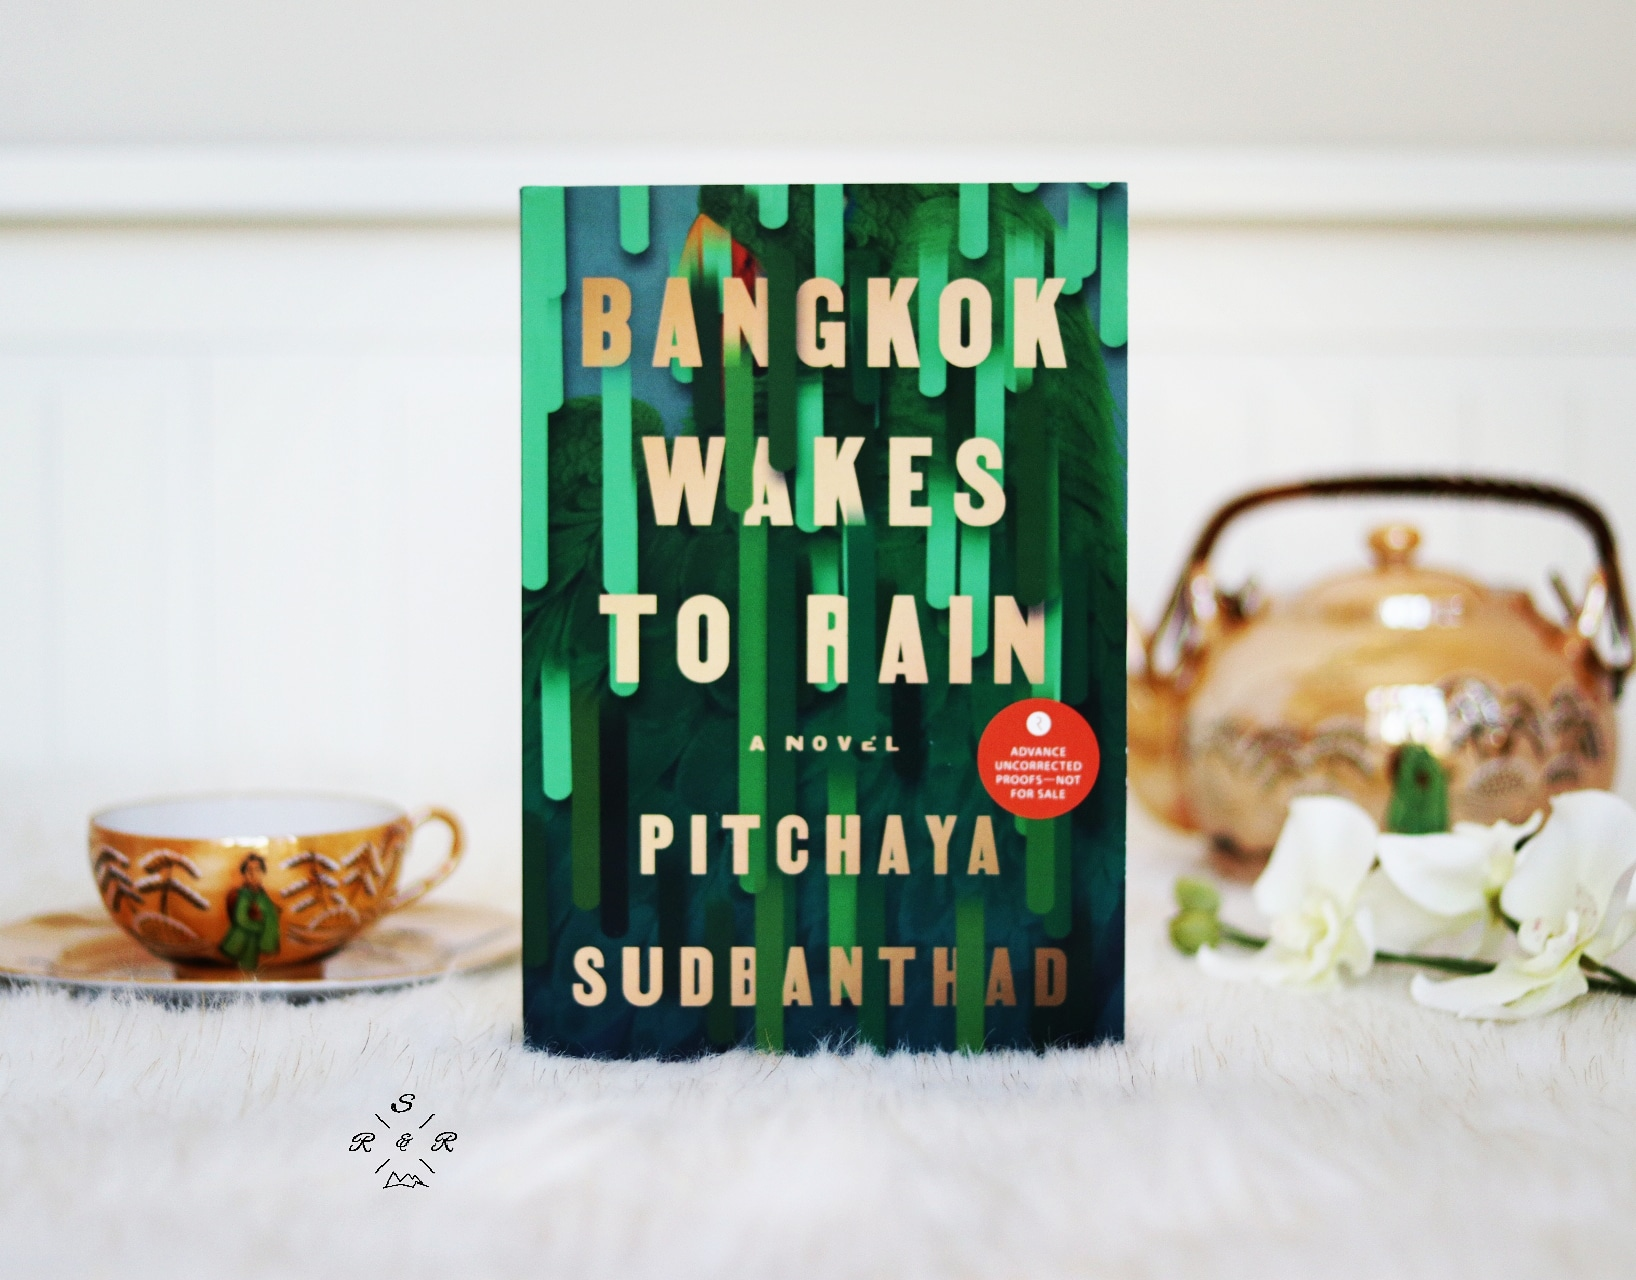 Bangkok Wakes to Rain - A missionary doctor pines for his native New England even as he succumbs to the vibrant chaos of nineteenth-century Siam. A post-World War II society woman marries, mothers, and holds court, little suspecting her solitary fate. A jazz pianist in the age of rock, haunted by his own ghosts, is summoned to appease the house's resident spirits. In the present, a young woman tries to outpace the long shadow of her political past. And in a New Krungthep yet to come, savvy teenagers row tourists past landmarks of the drowned old city they themselves do not remember. Time collapses as these lives collide and converge, linked by the forces voraciously making and remaking the amphibious, ever-morphing capital itself. Bangkok Wakes to Rain is an elegy for what time erases and a love song to all that persists, yearning, into the unknowable future.